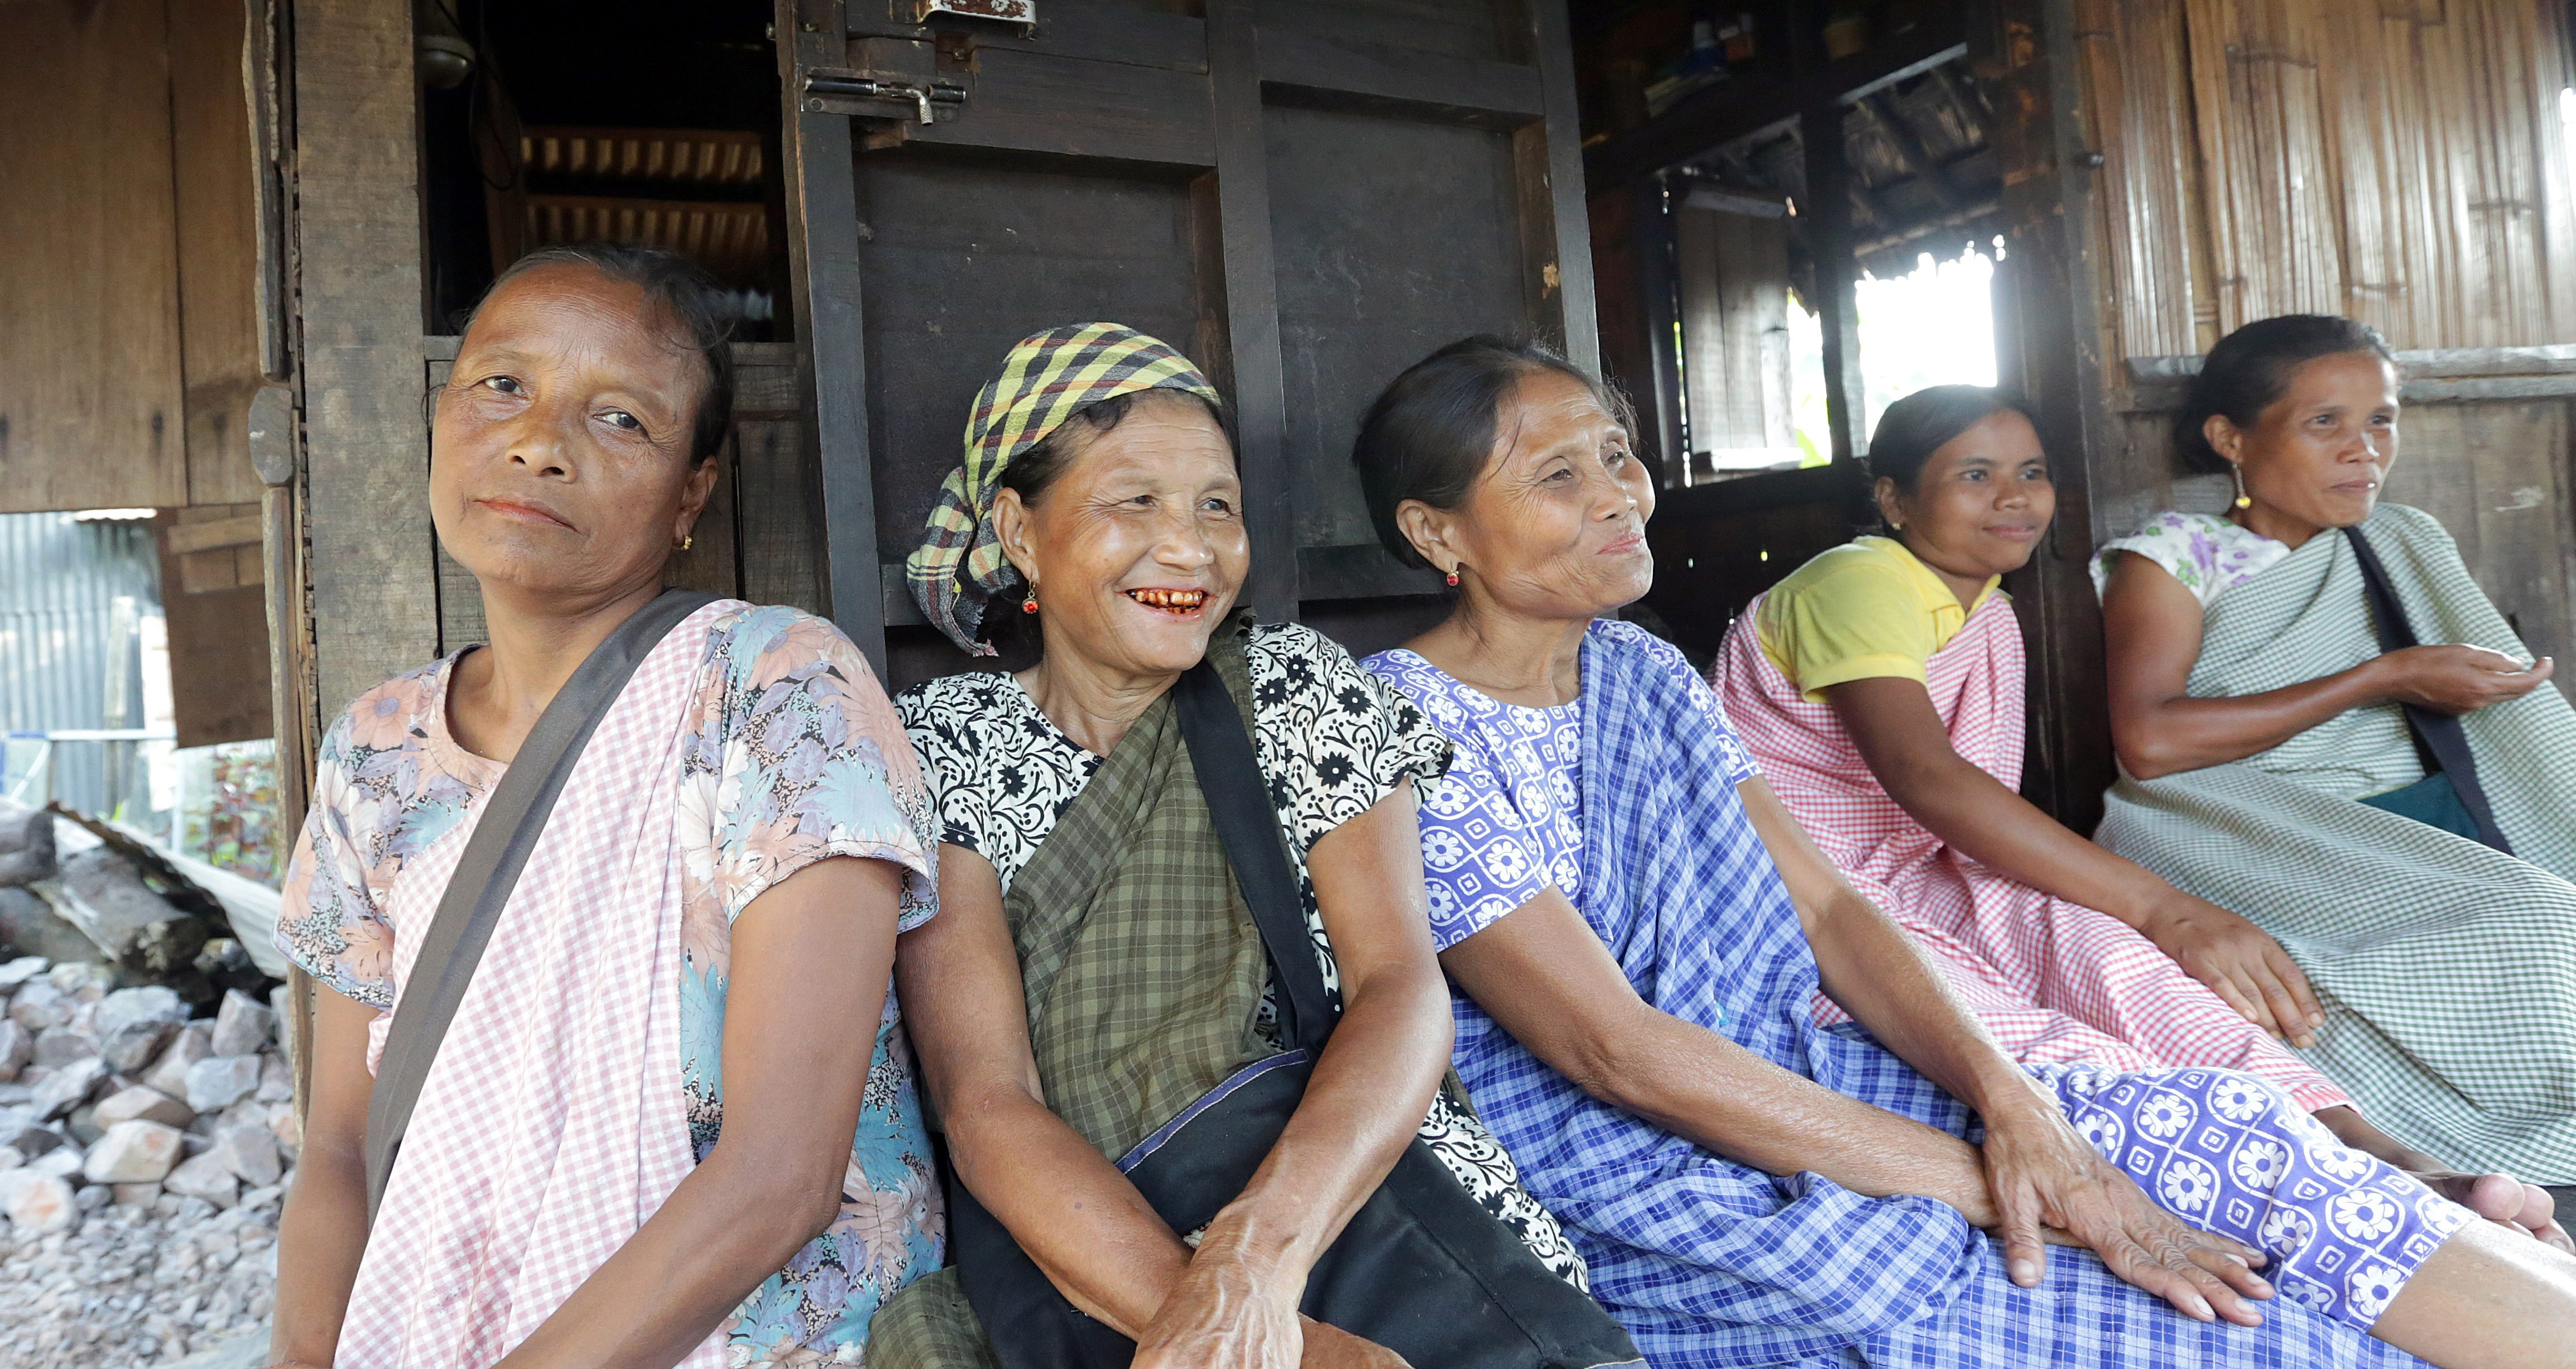 A picture made available on 16 September 2016 shows Indian khasi tribal women sitting outside their house near the Cherrapunji,  Meghalaya, India, 26 August 2016.